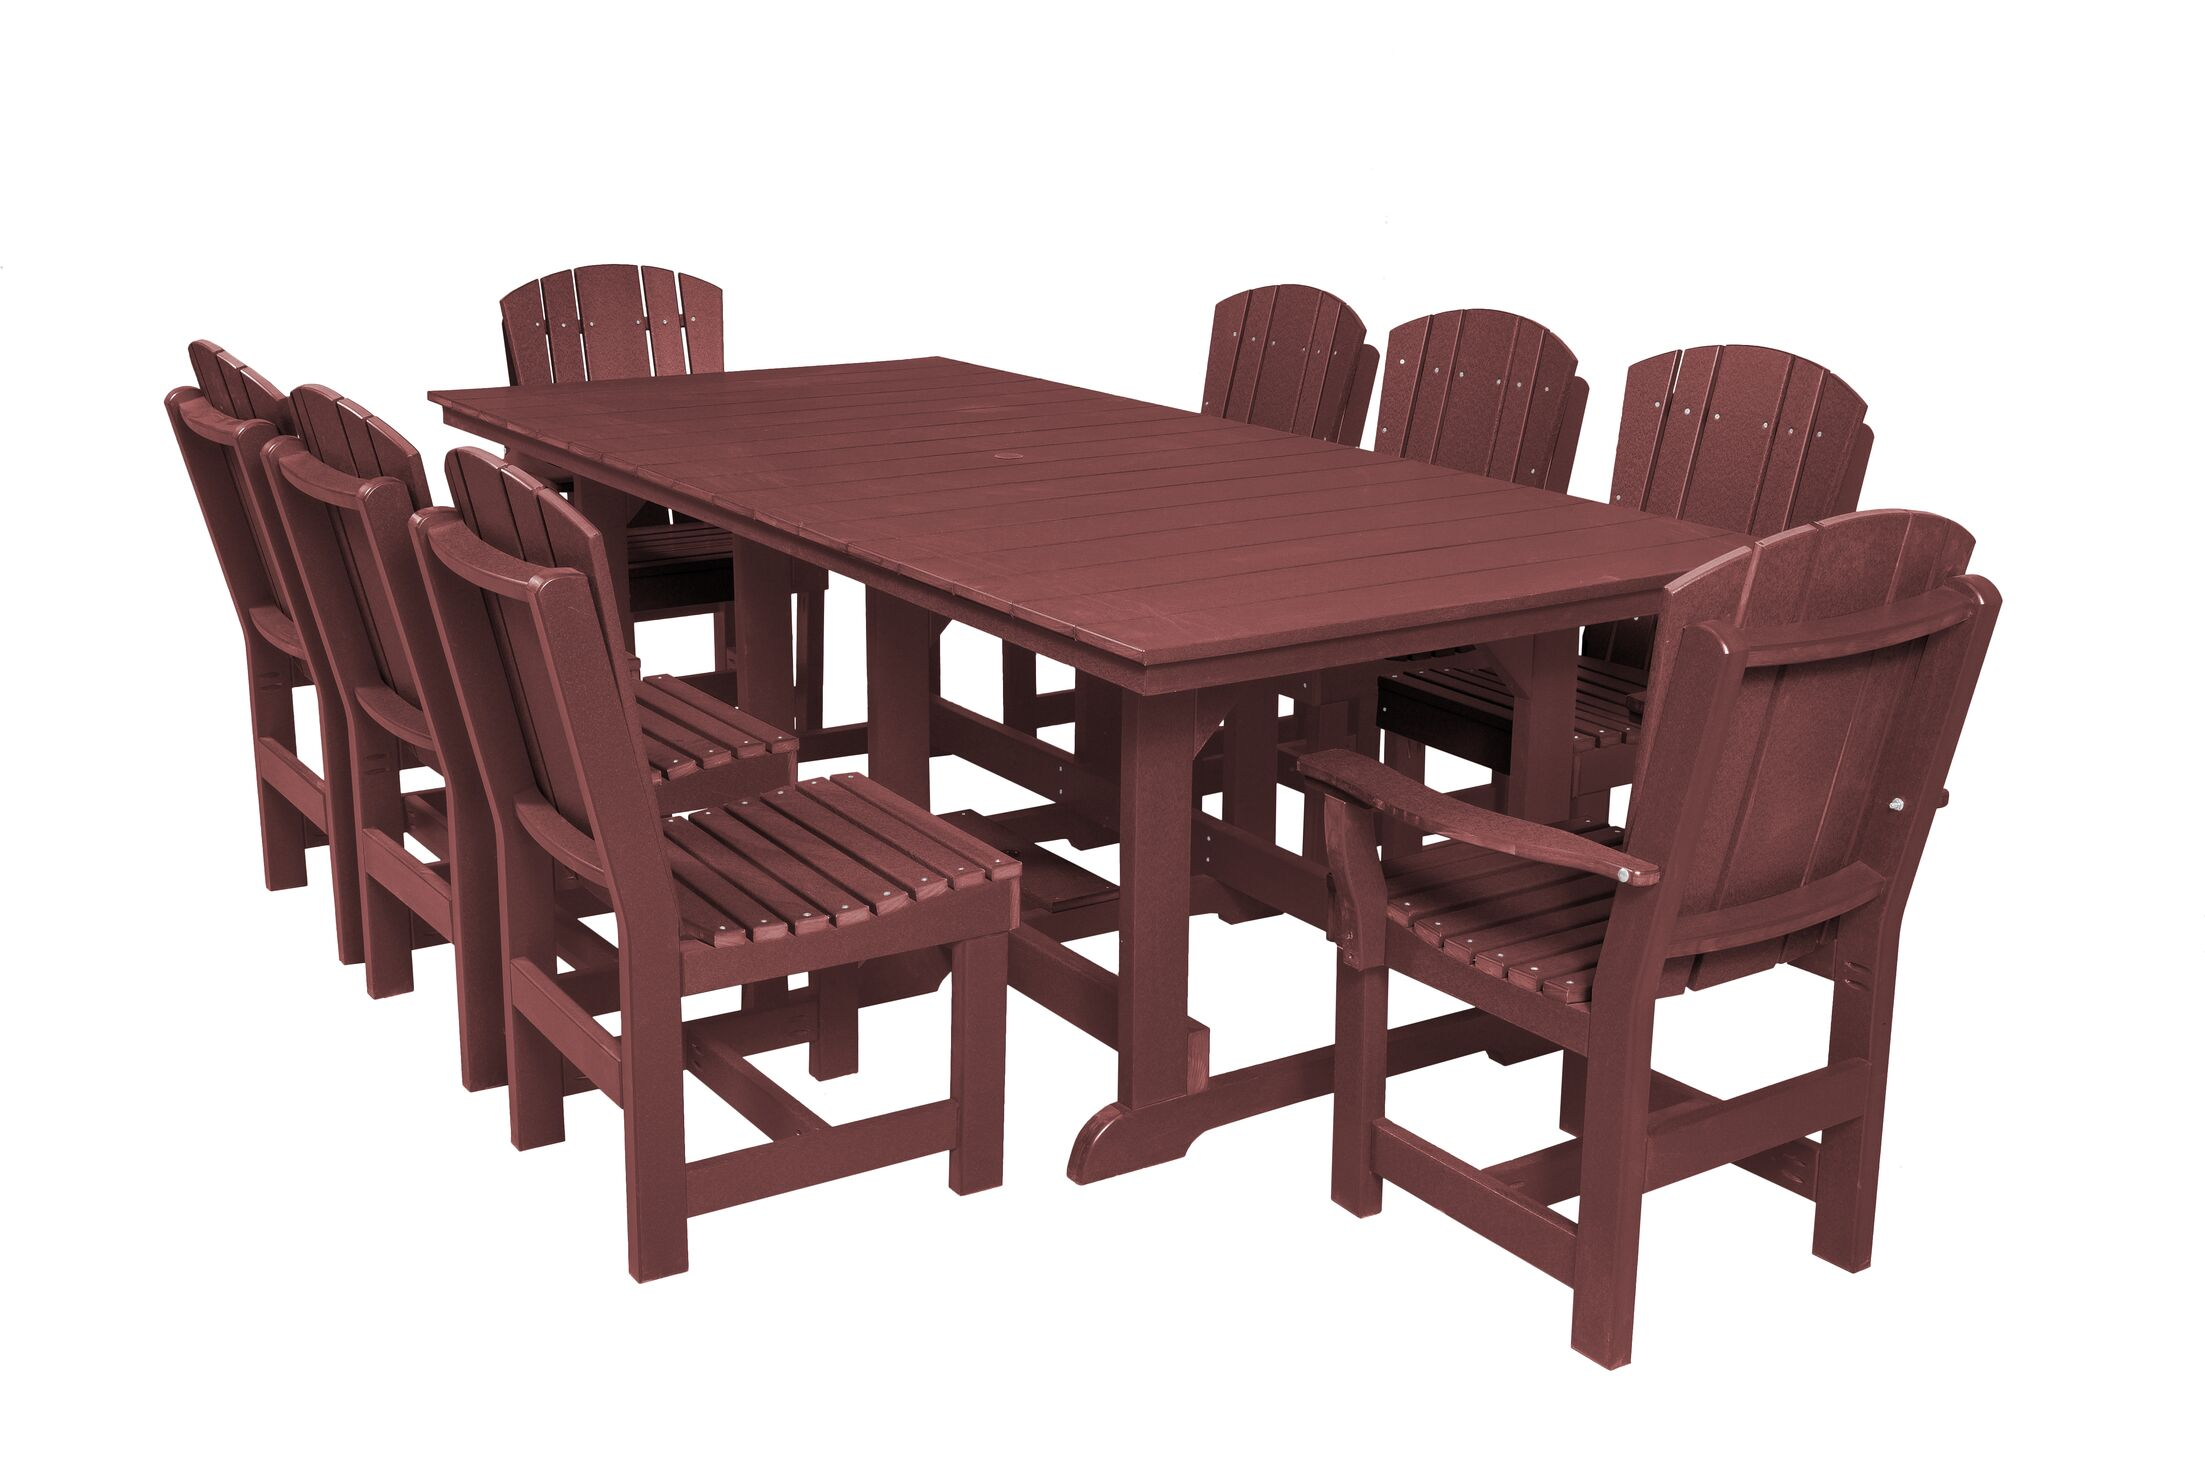 Patricia 9 Piece Dining Set Color: Cherry Wood